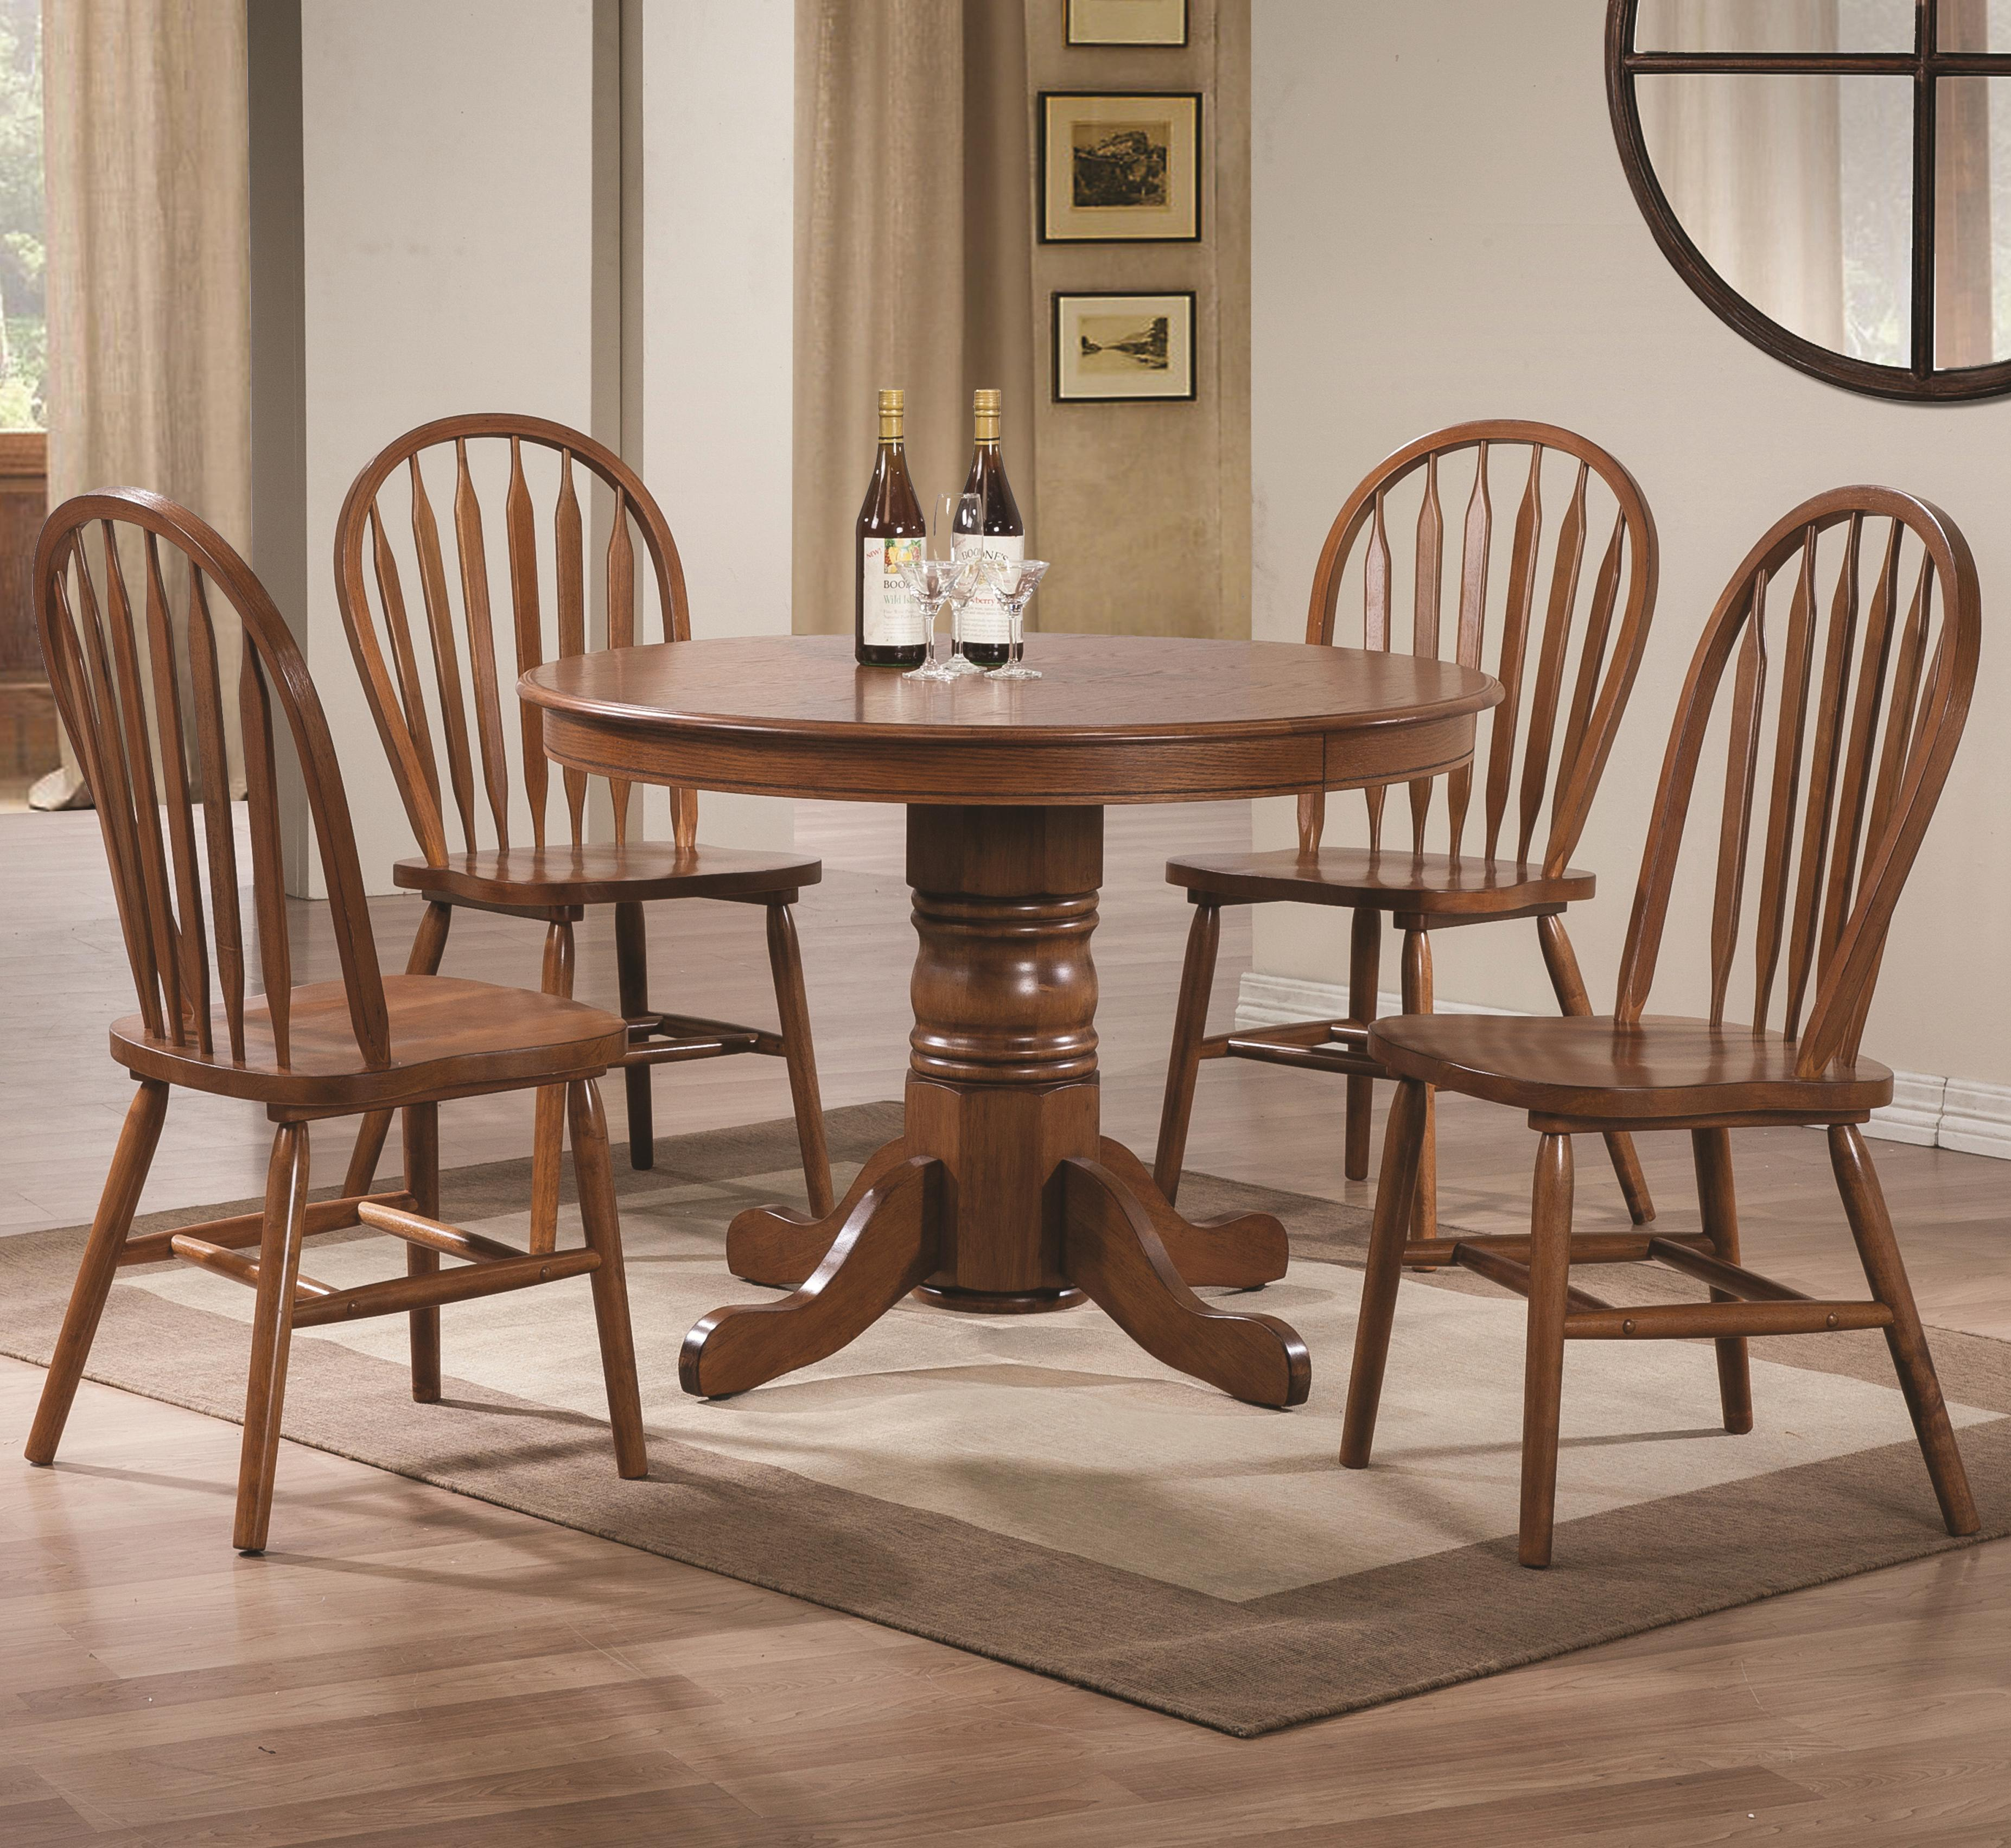 Freda 5 Piece Dining Set With Round Pedestal Table And